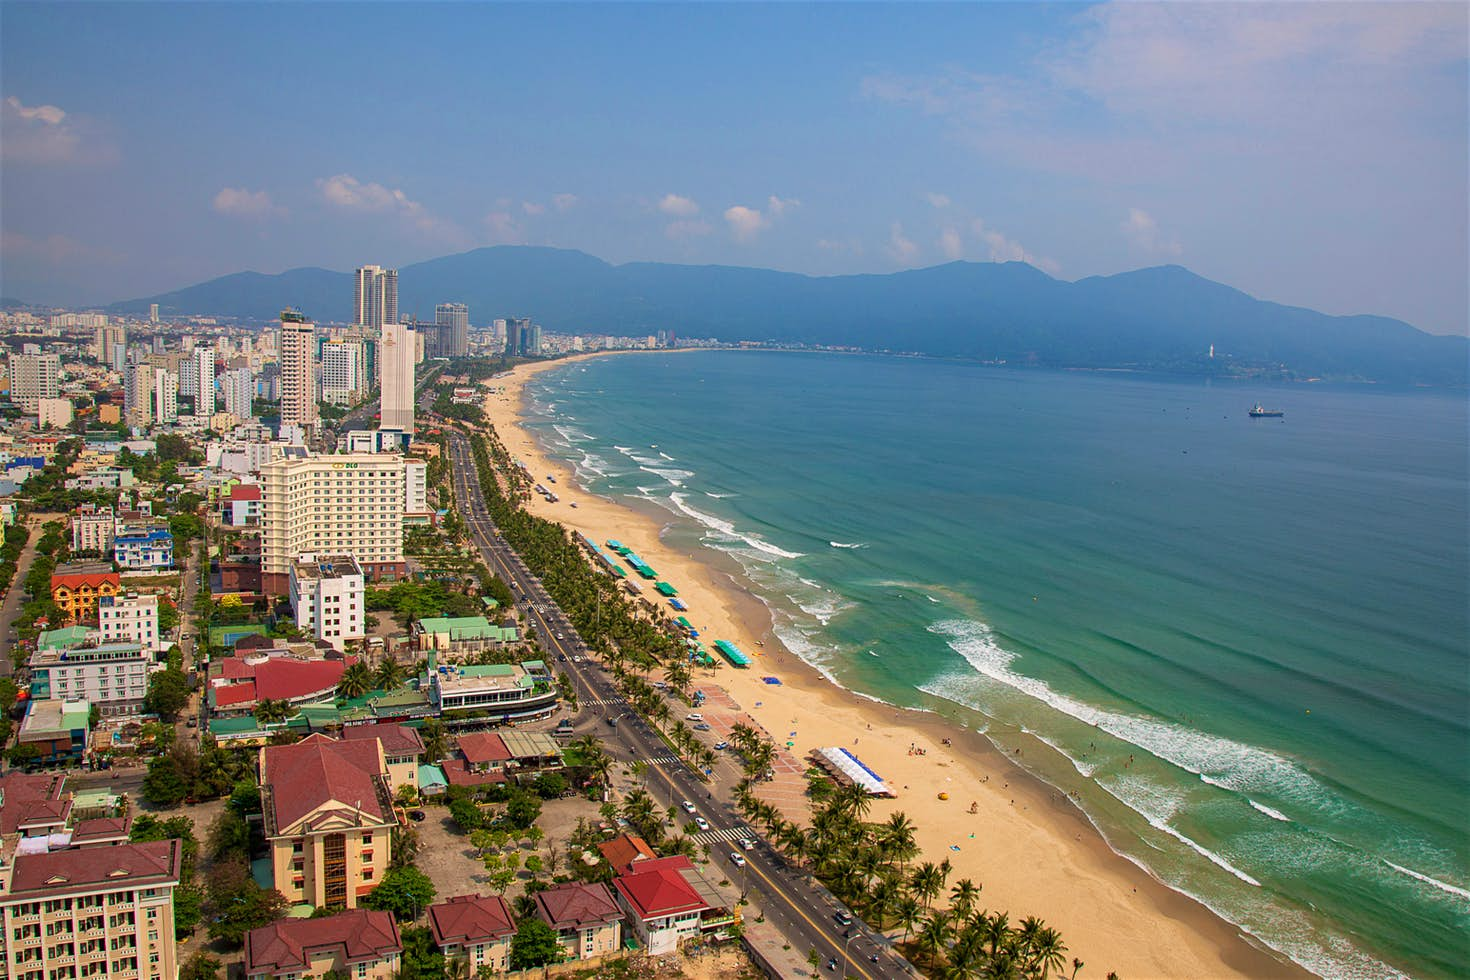 Danang's coast in February